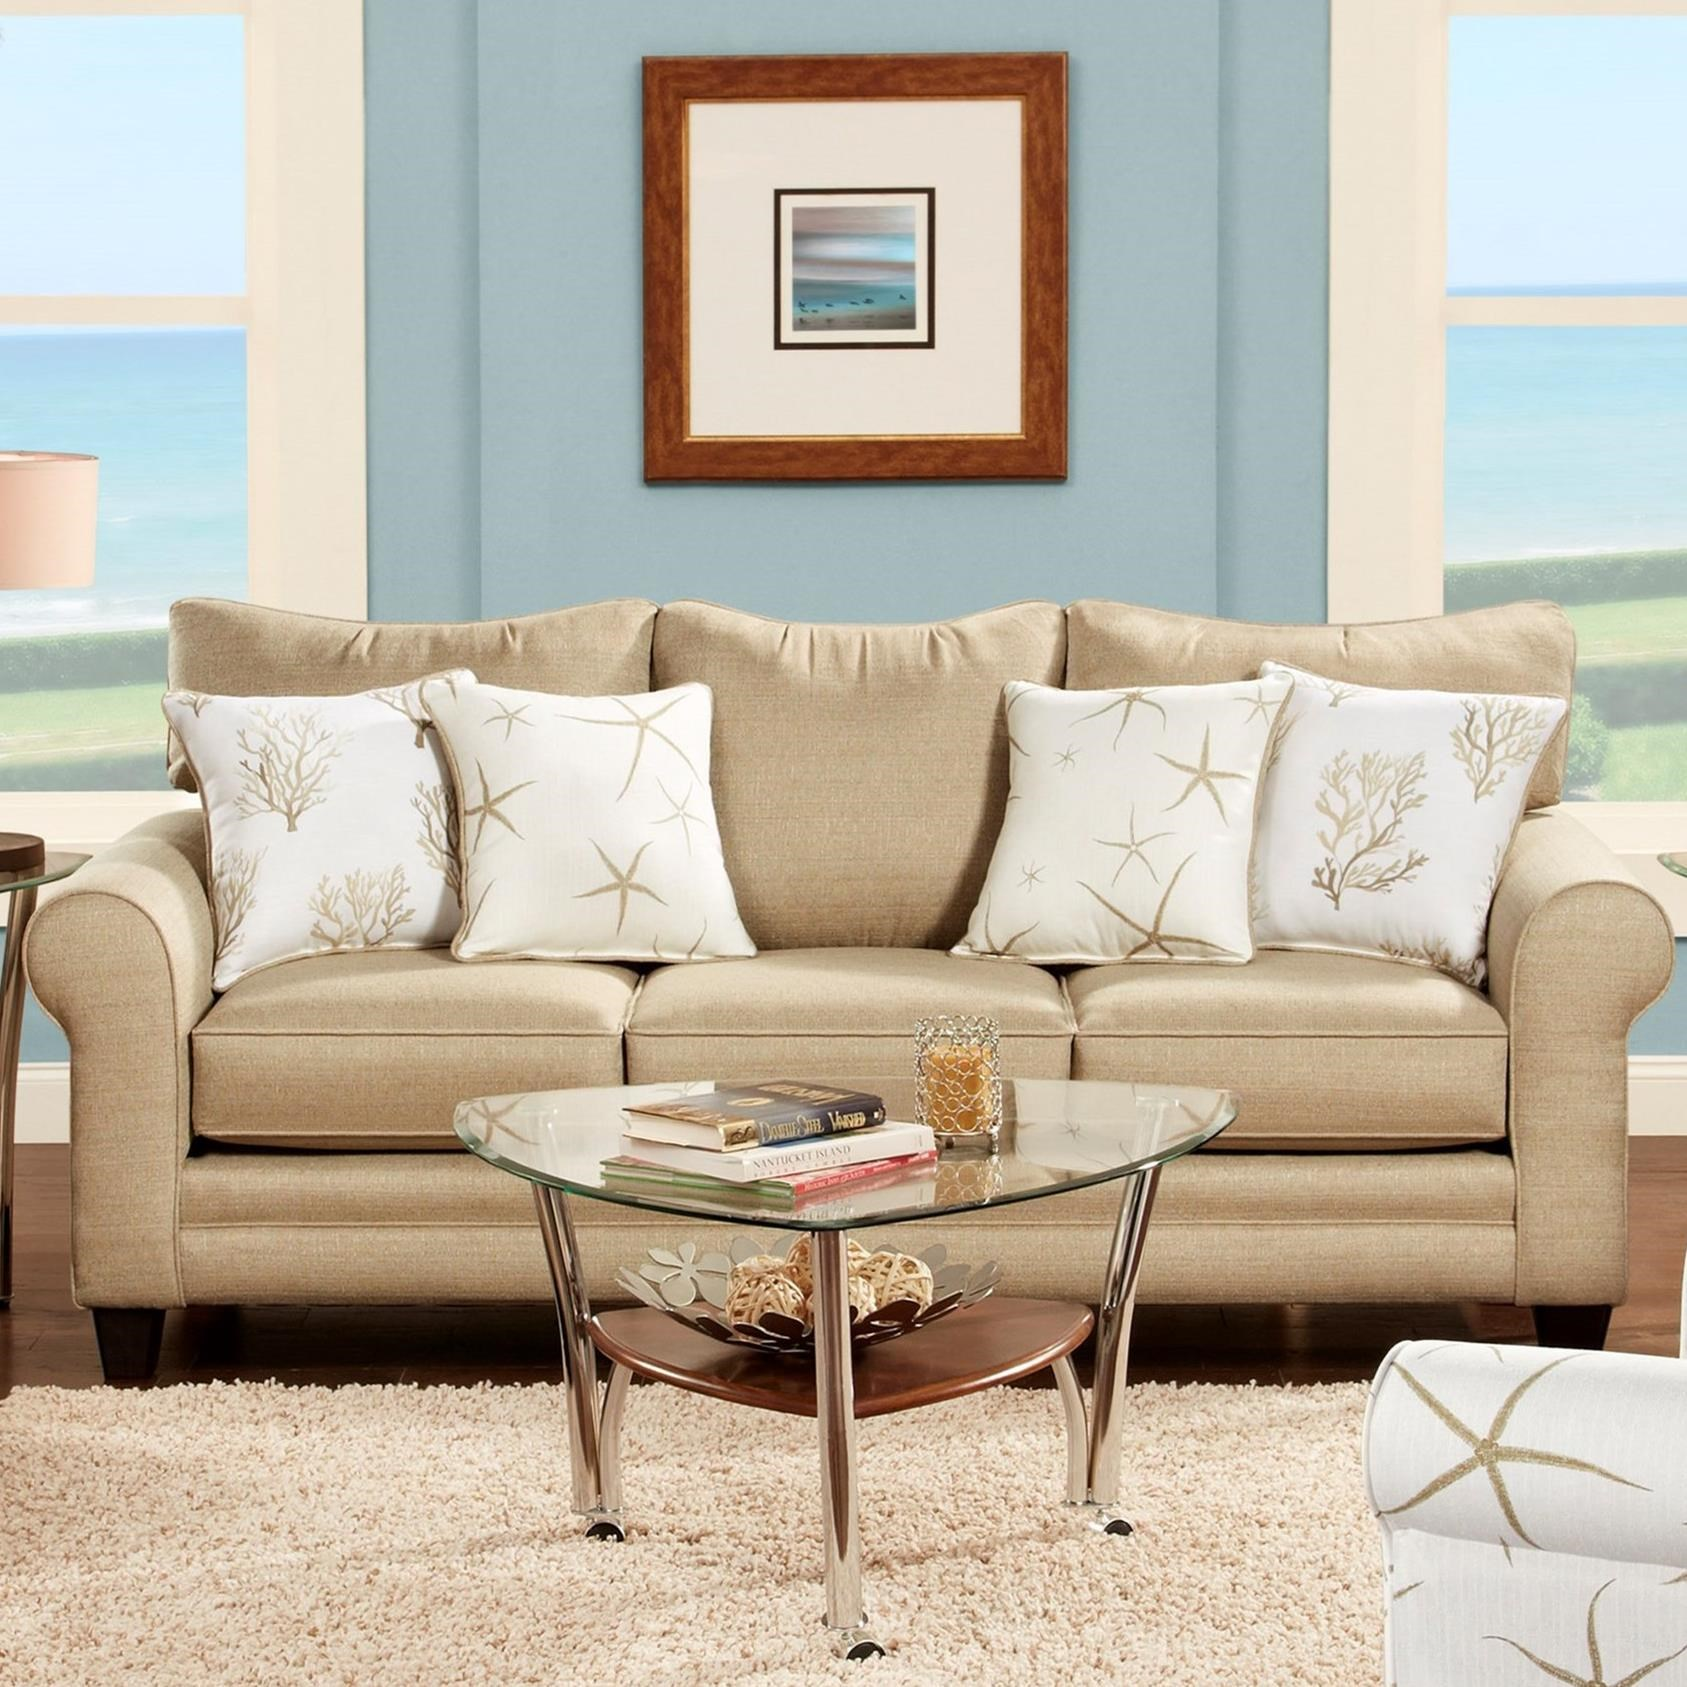 VFM Signature 1140 Sofa - Item Number: 1140Vibrant Linen